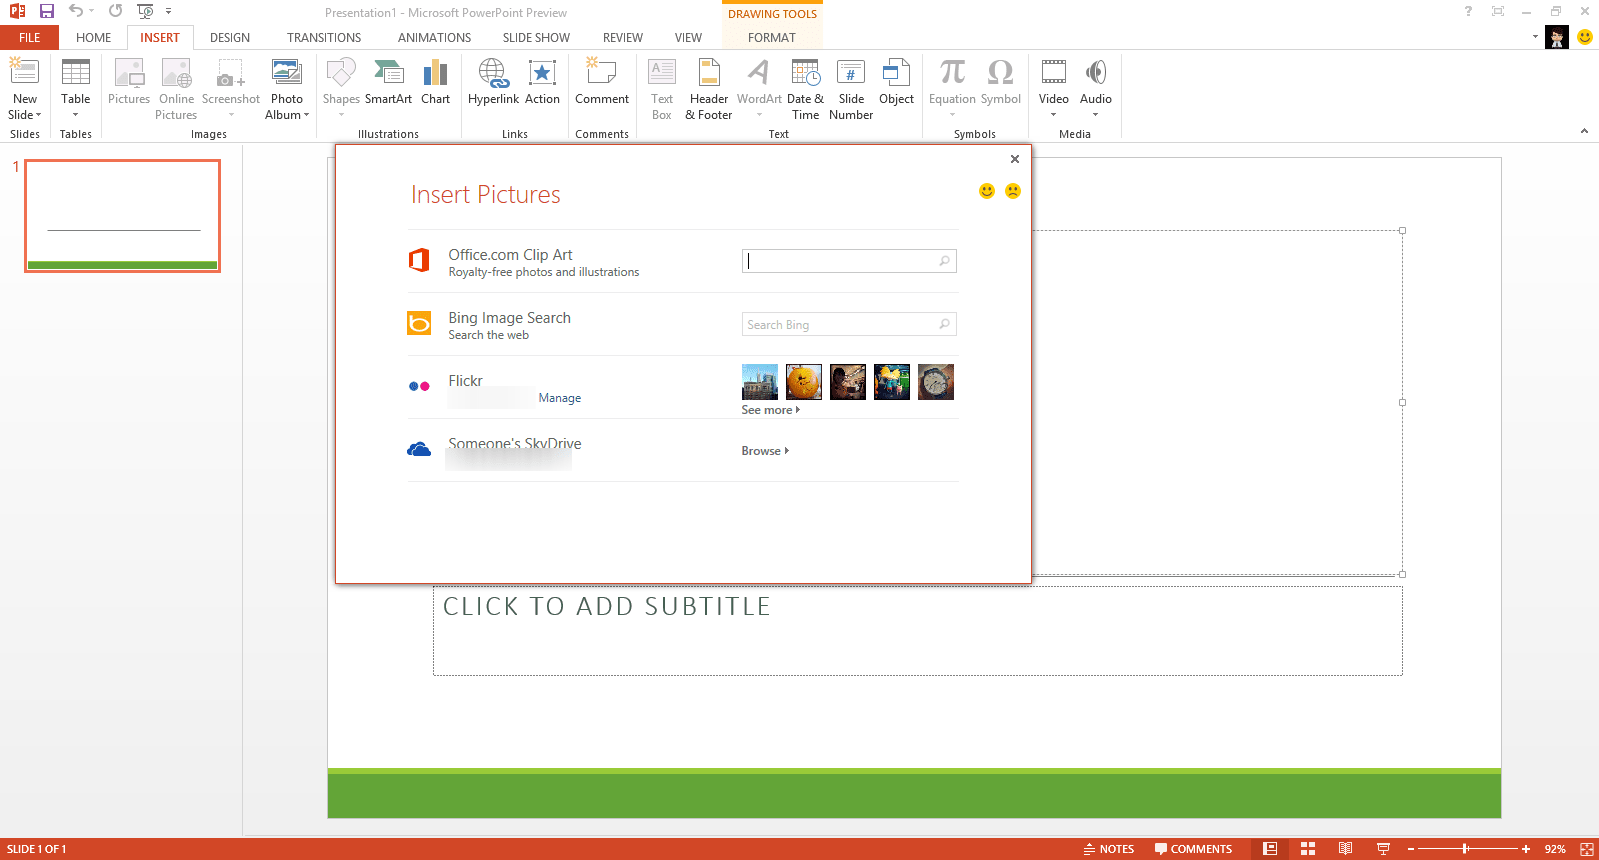 Microsoft powerpoint 2013 download trial version also available click here to begin your 30 day trial view full description microsoft powerpoint 2013 toneelgroepblik Choice Image